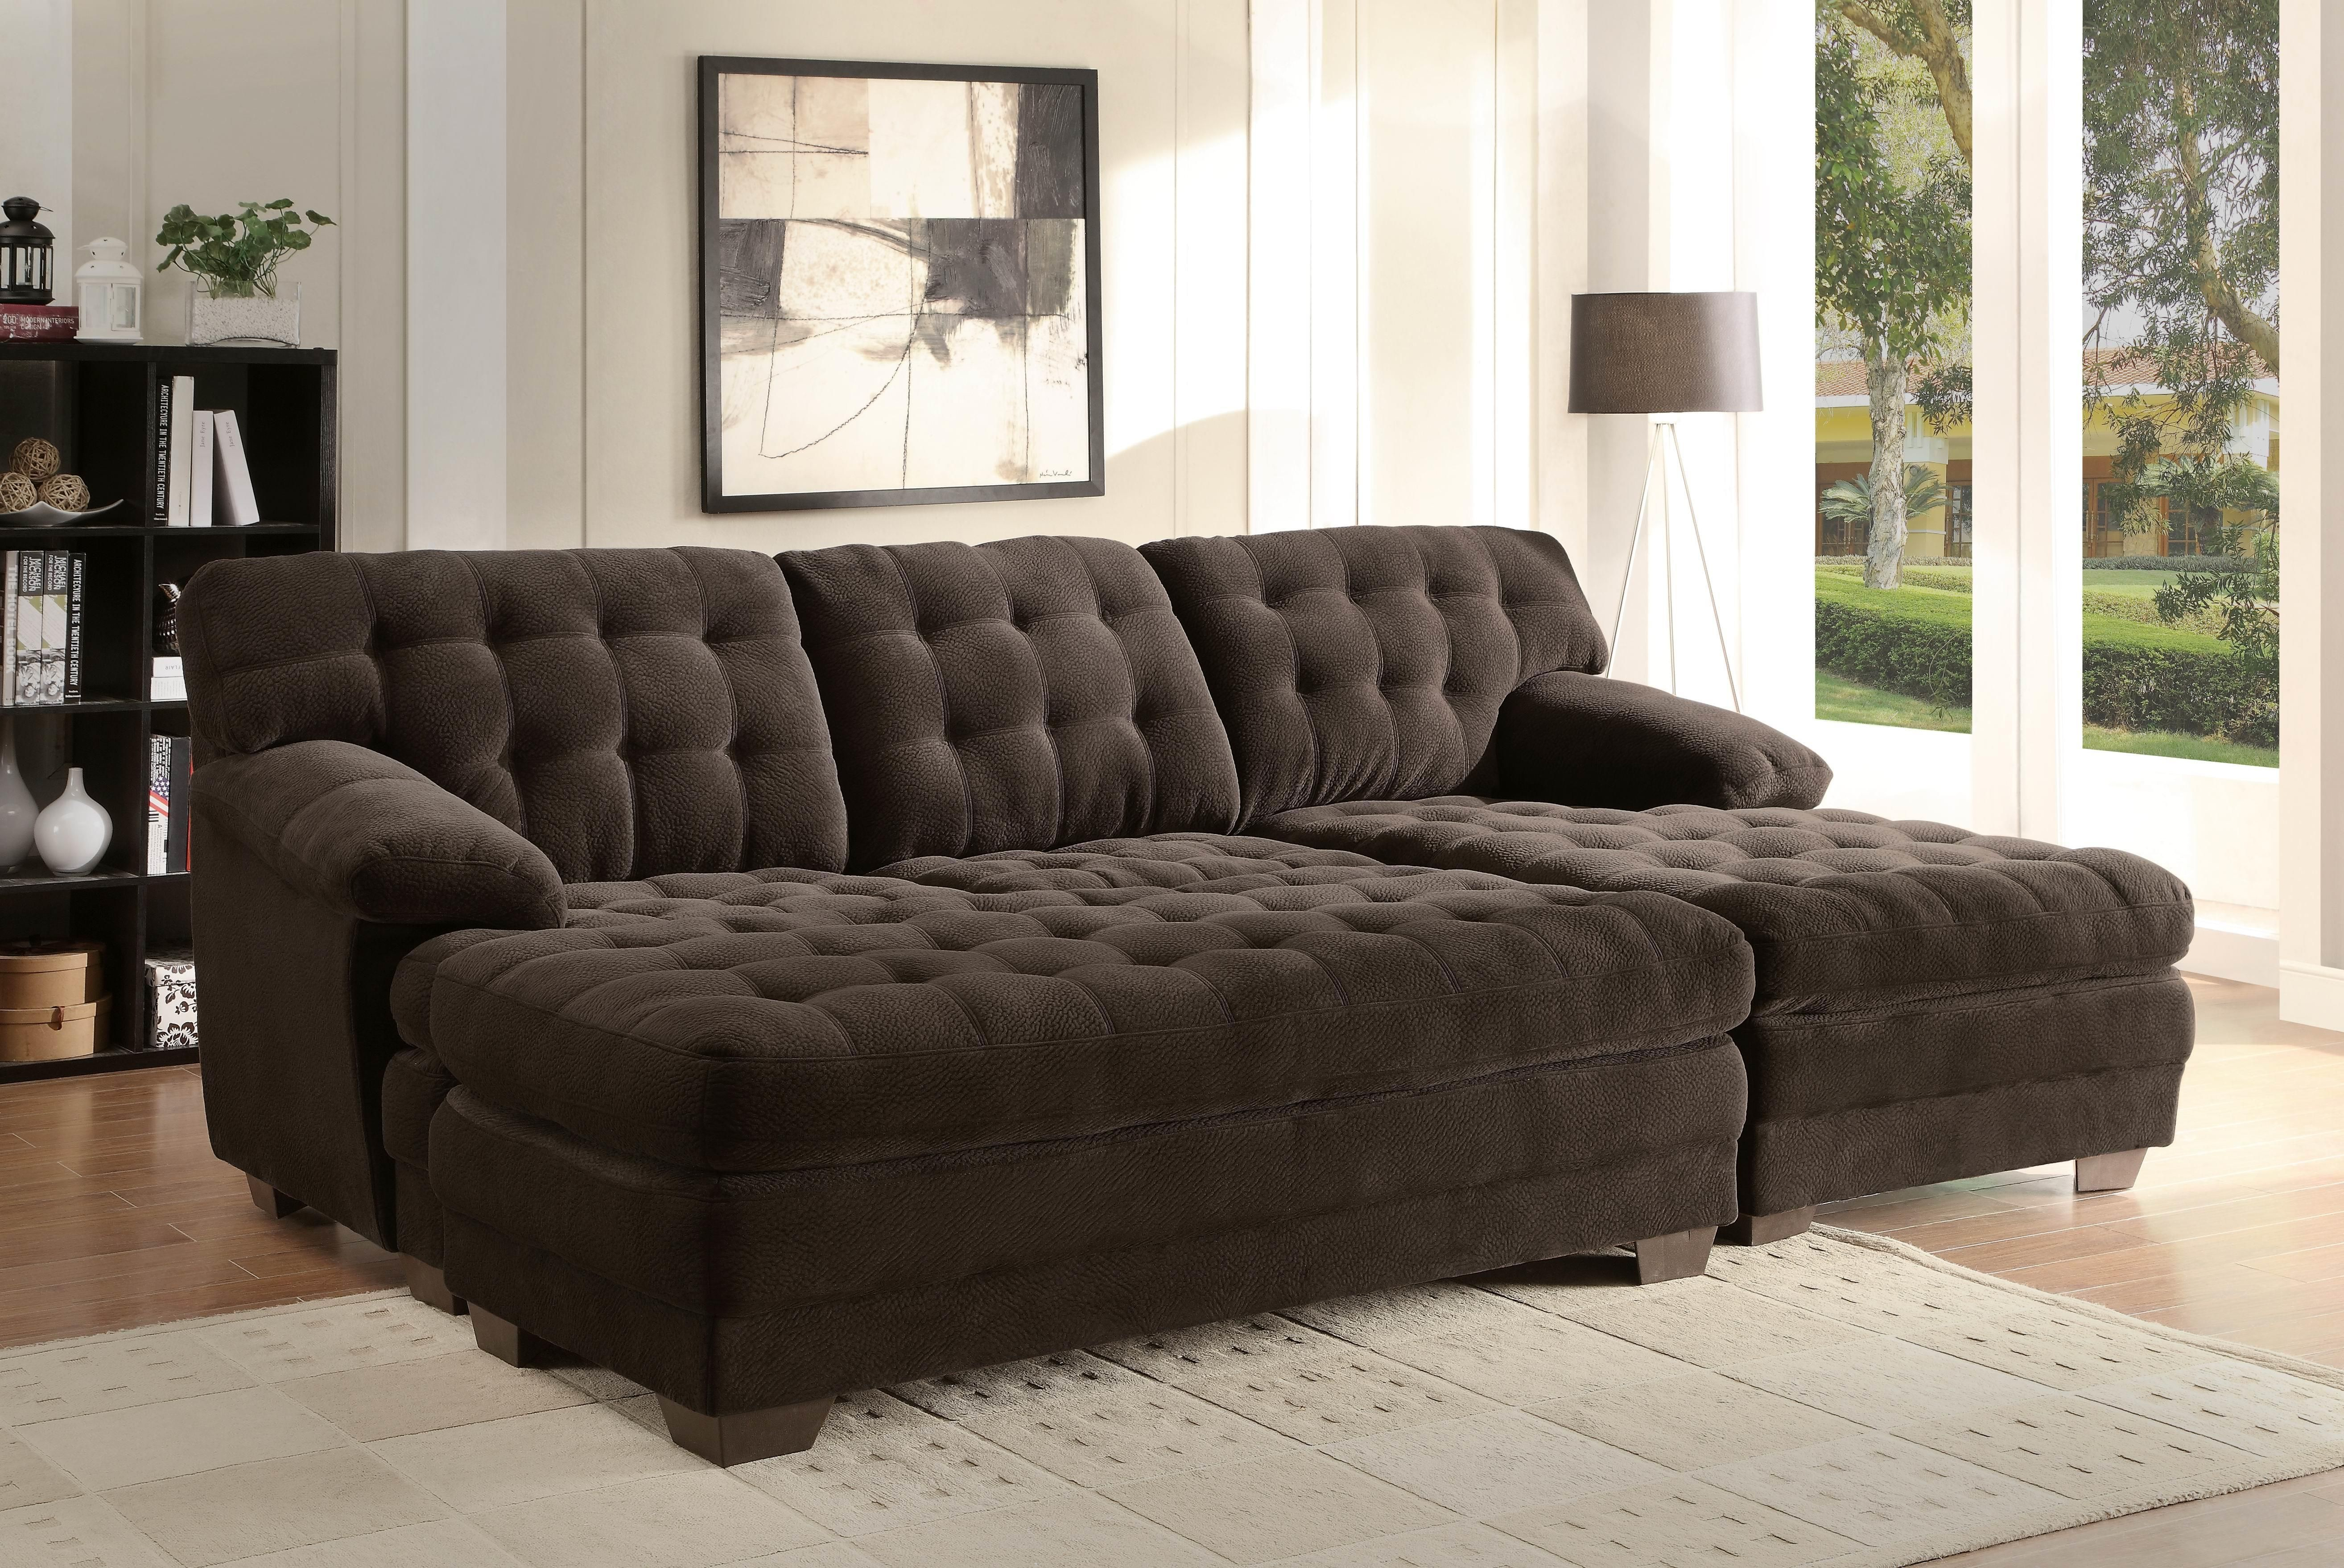 Extra Wide Sofa Best Collections Of Sofas And Couches